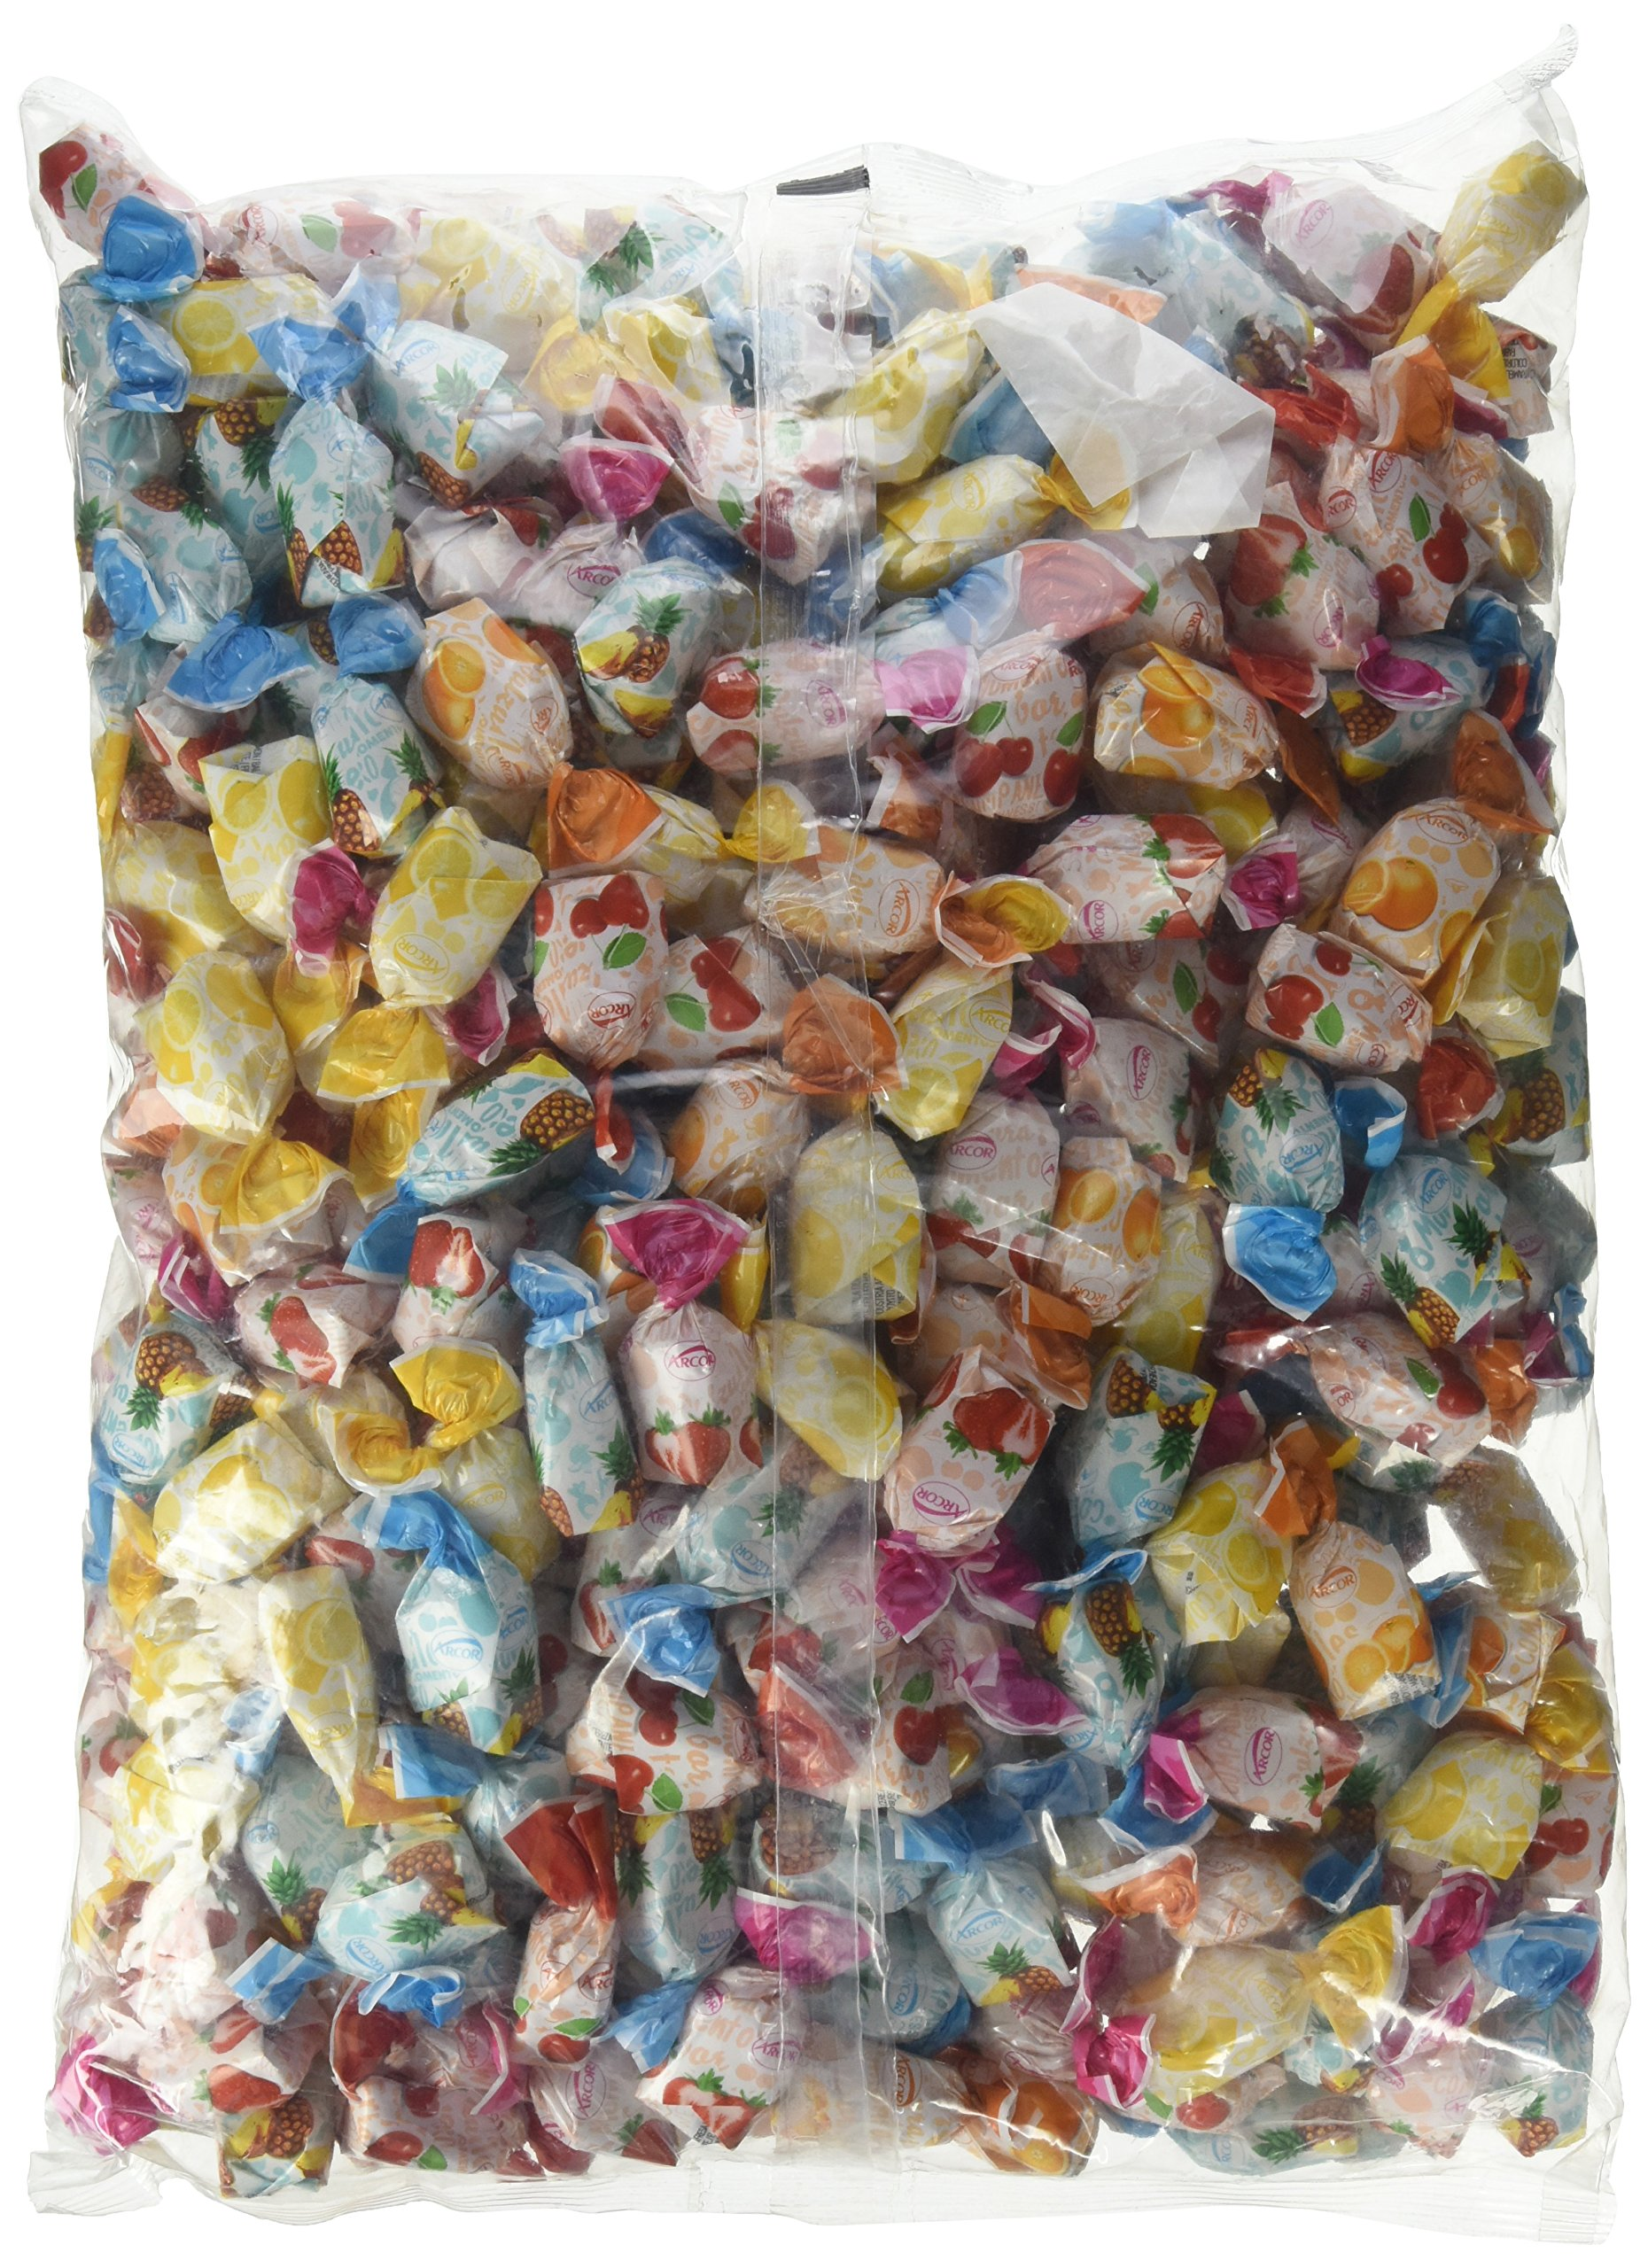 Arcor Assorted Fruit Filled Candies 6 Lb Bag - RoyalCandy by Arcor